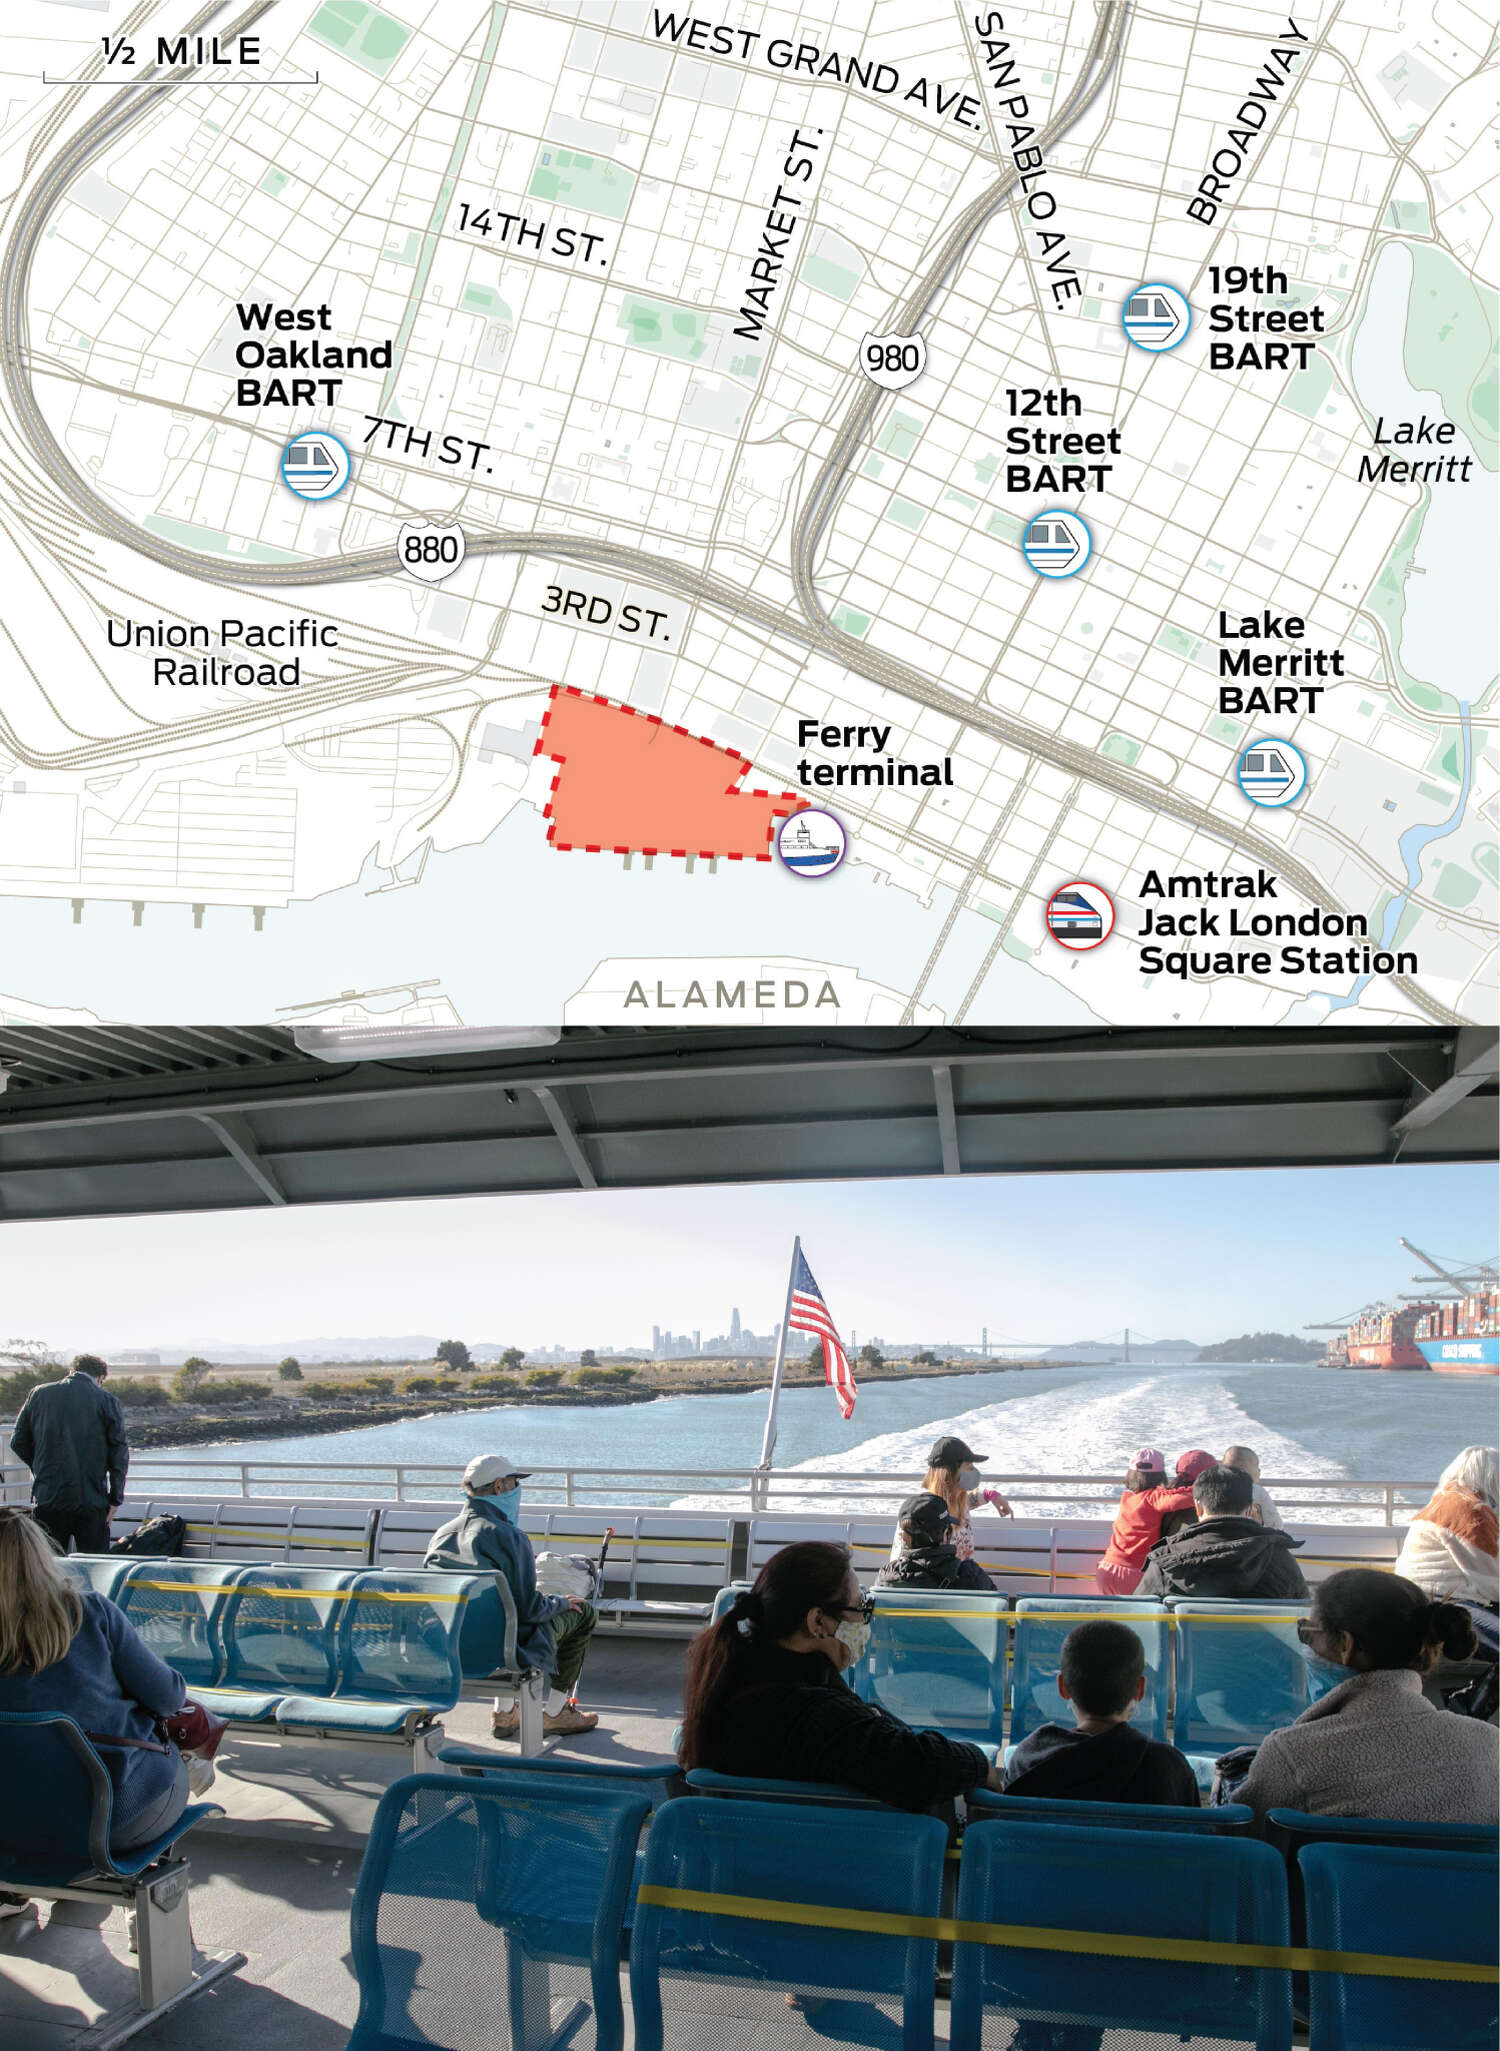 A map of a wider view of Oakland that includes West Oakland and downtown shows the locations of BART stations, the Ferry terminal and the Amtrak station.